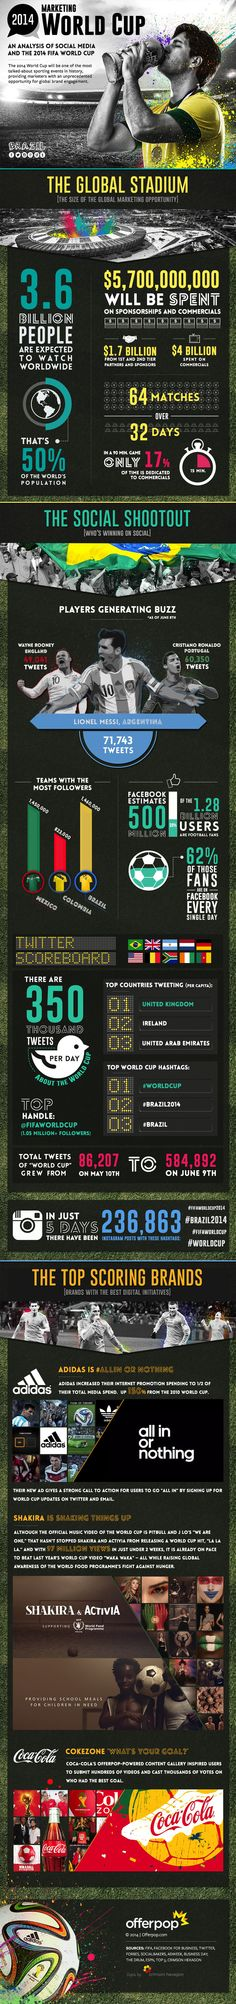 World Cup Fans Create User-Generated Opportunity For Marketers [Inforgraphic] - SocialTimes